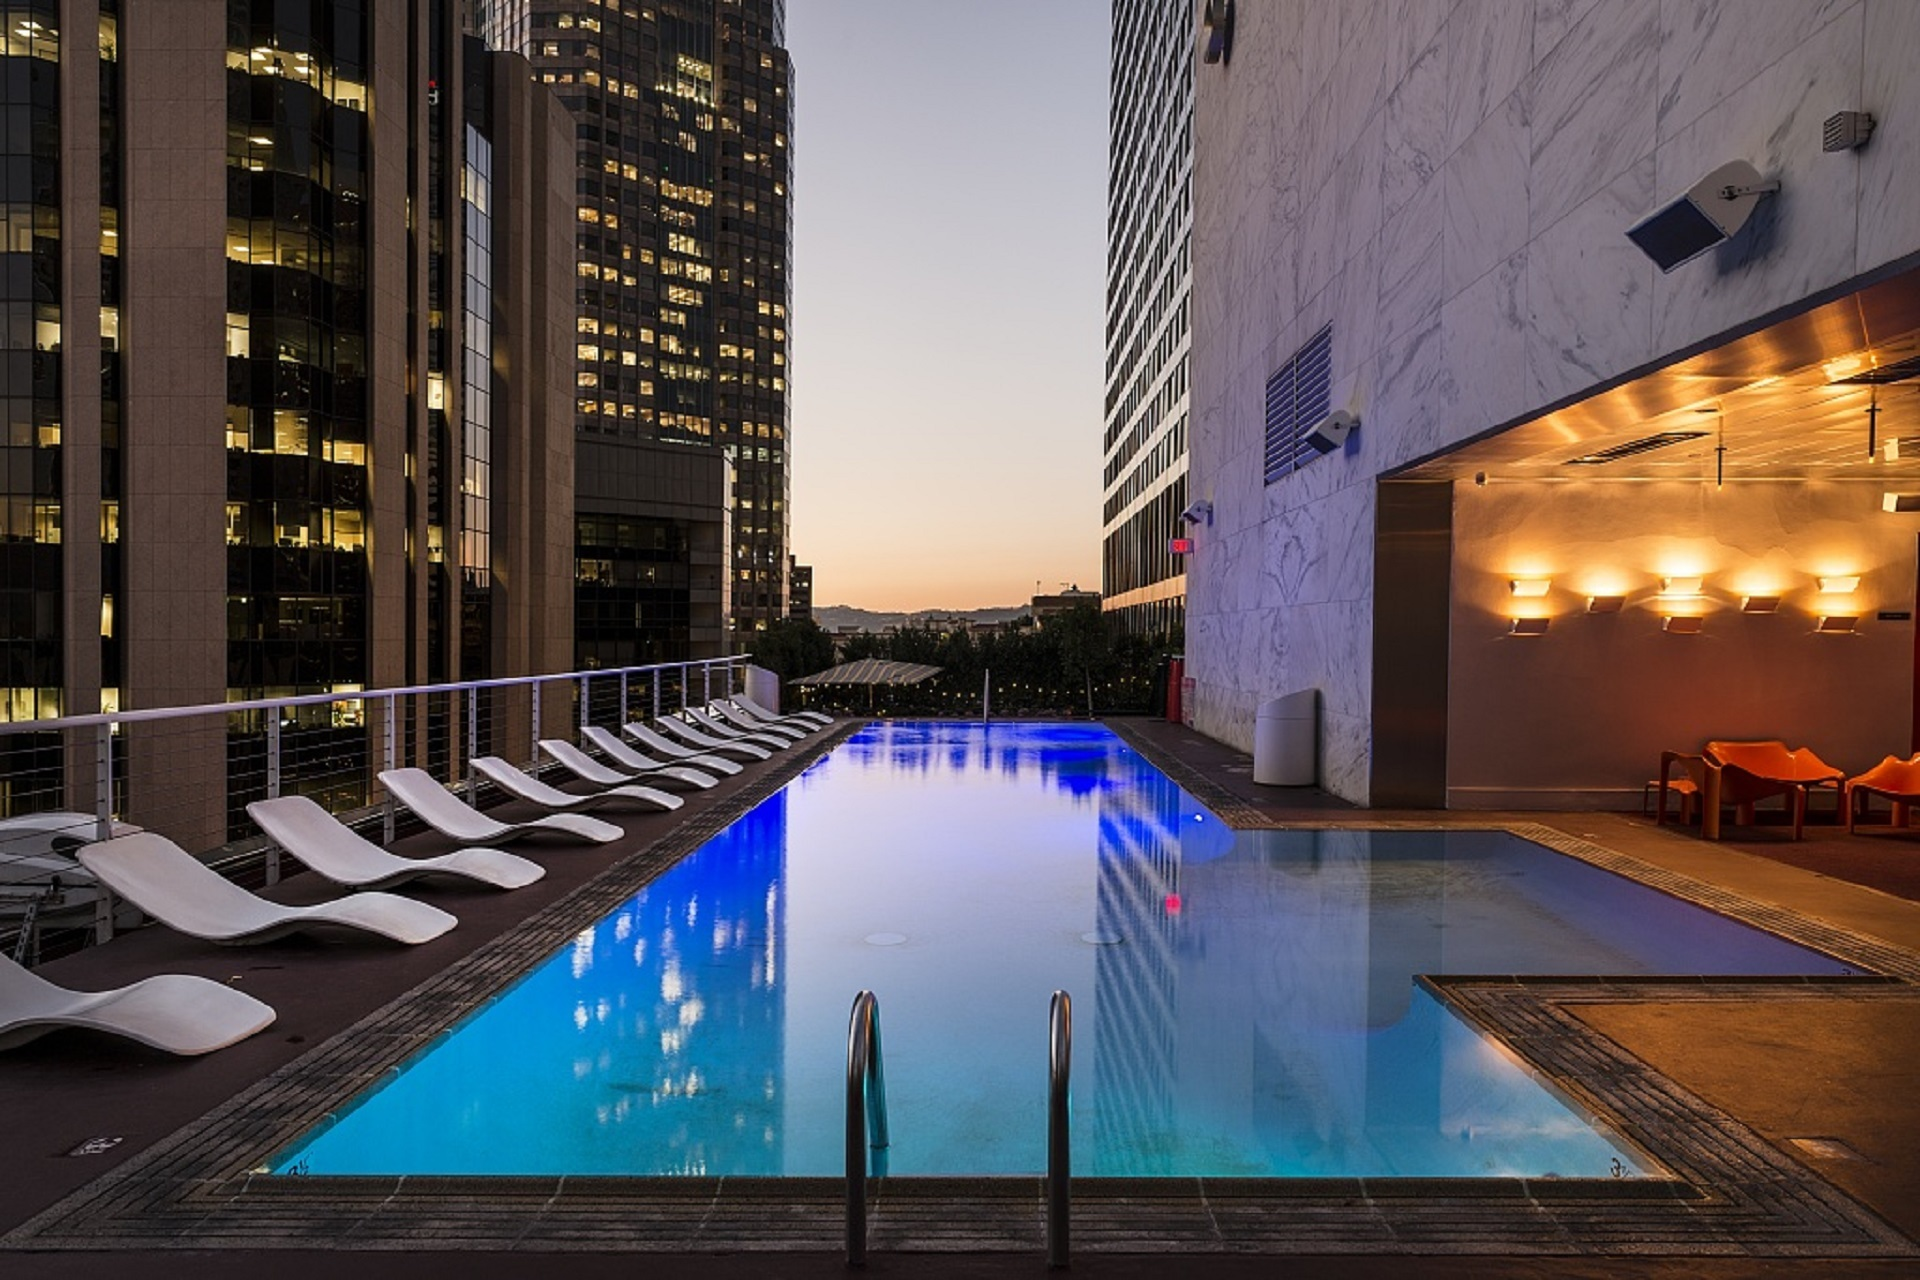 Best Types of Swimming Pools For Colder Climates